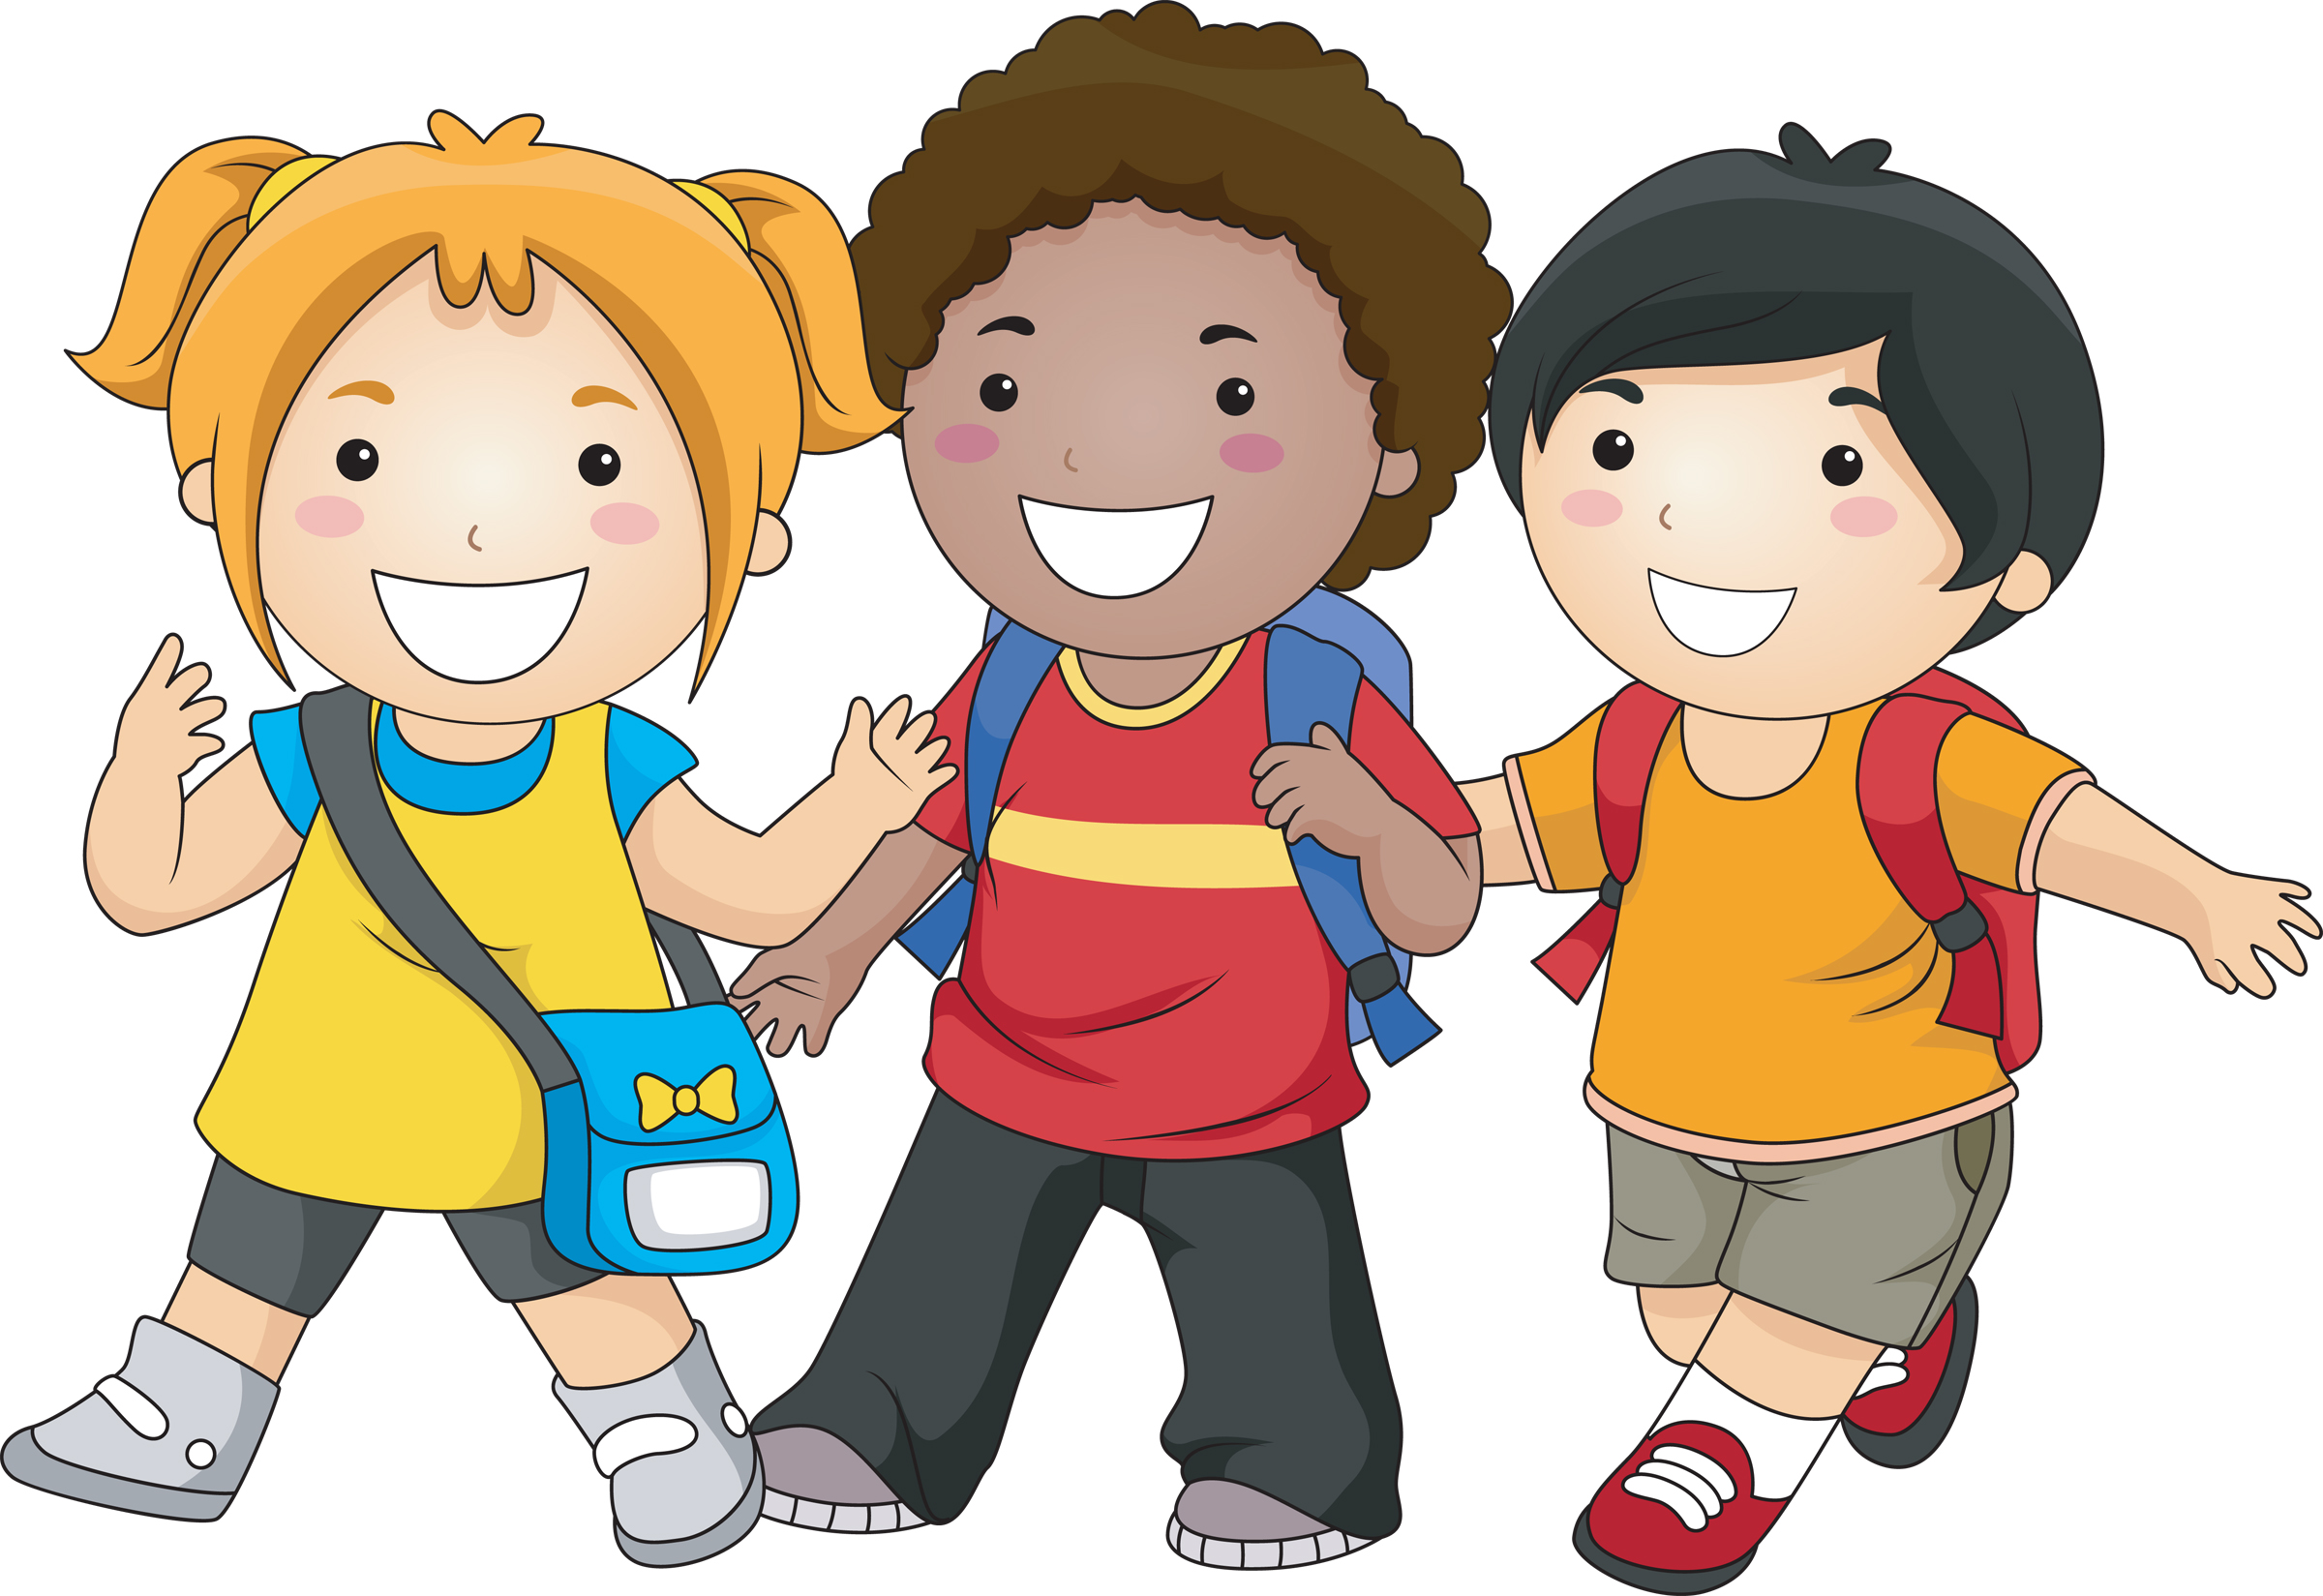 Friendship school friends clipart clipart kid